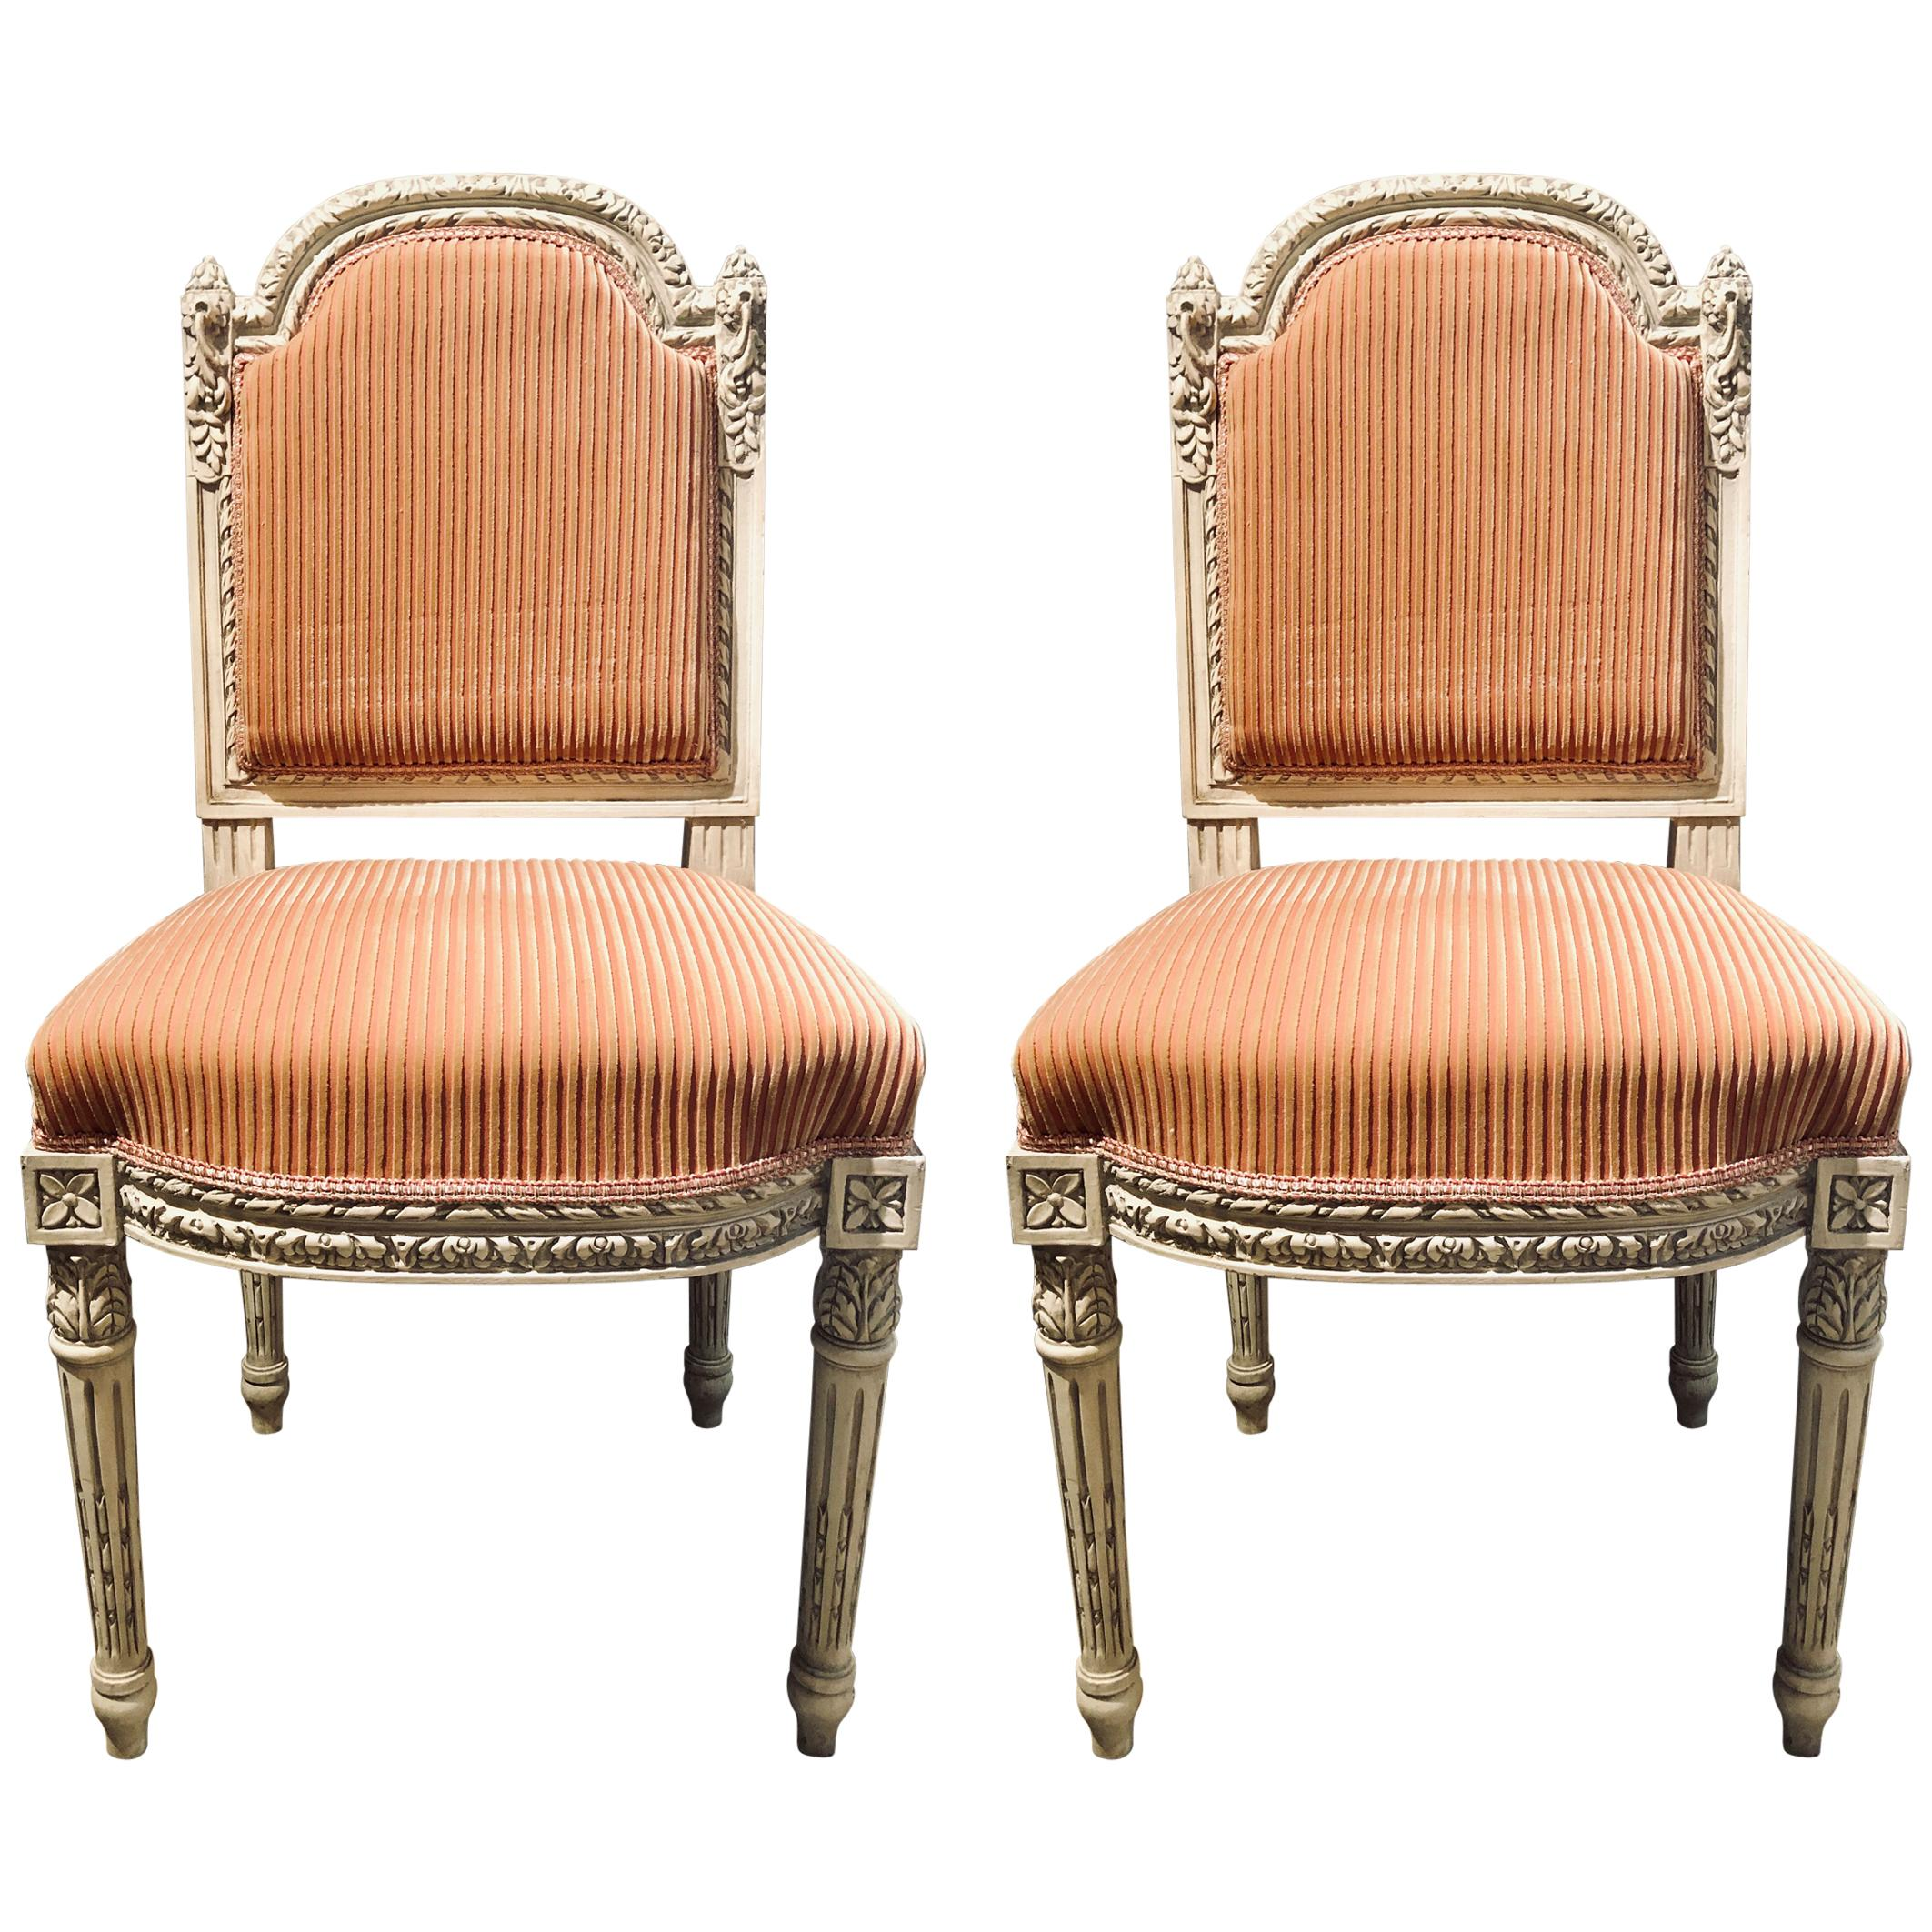 12 Swedish Louis XVI Style Dining / Side Chairs Painted Carved Frames New Fabric